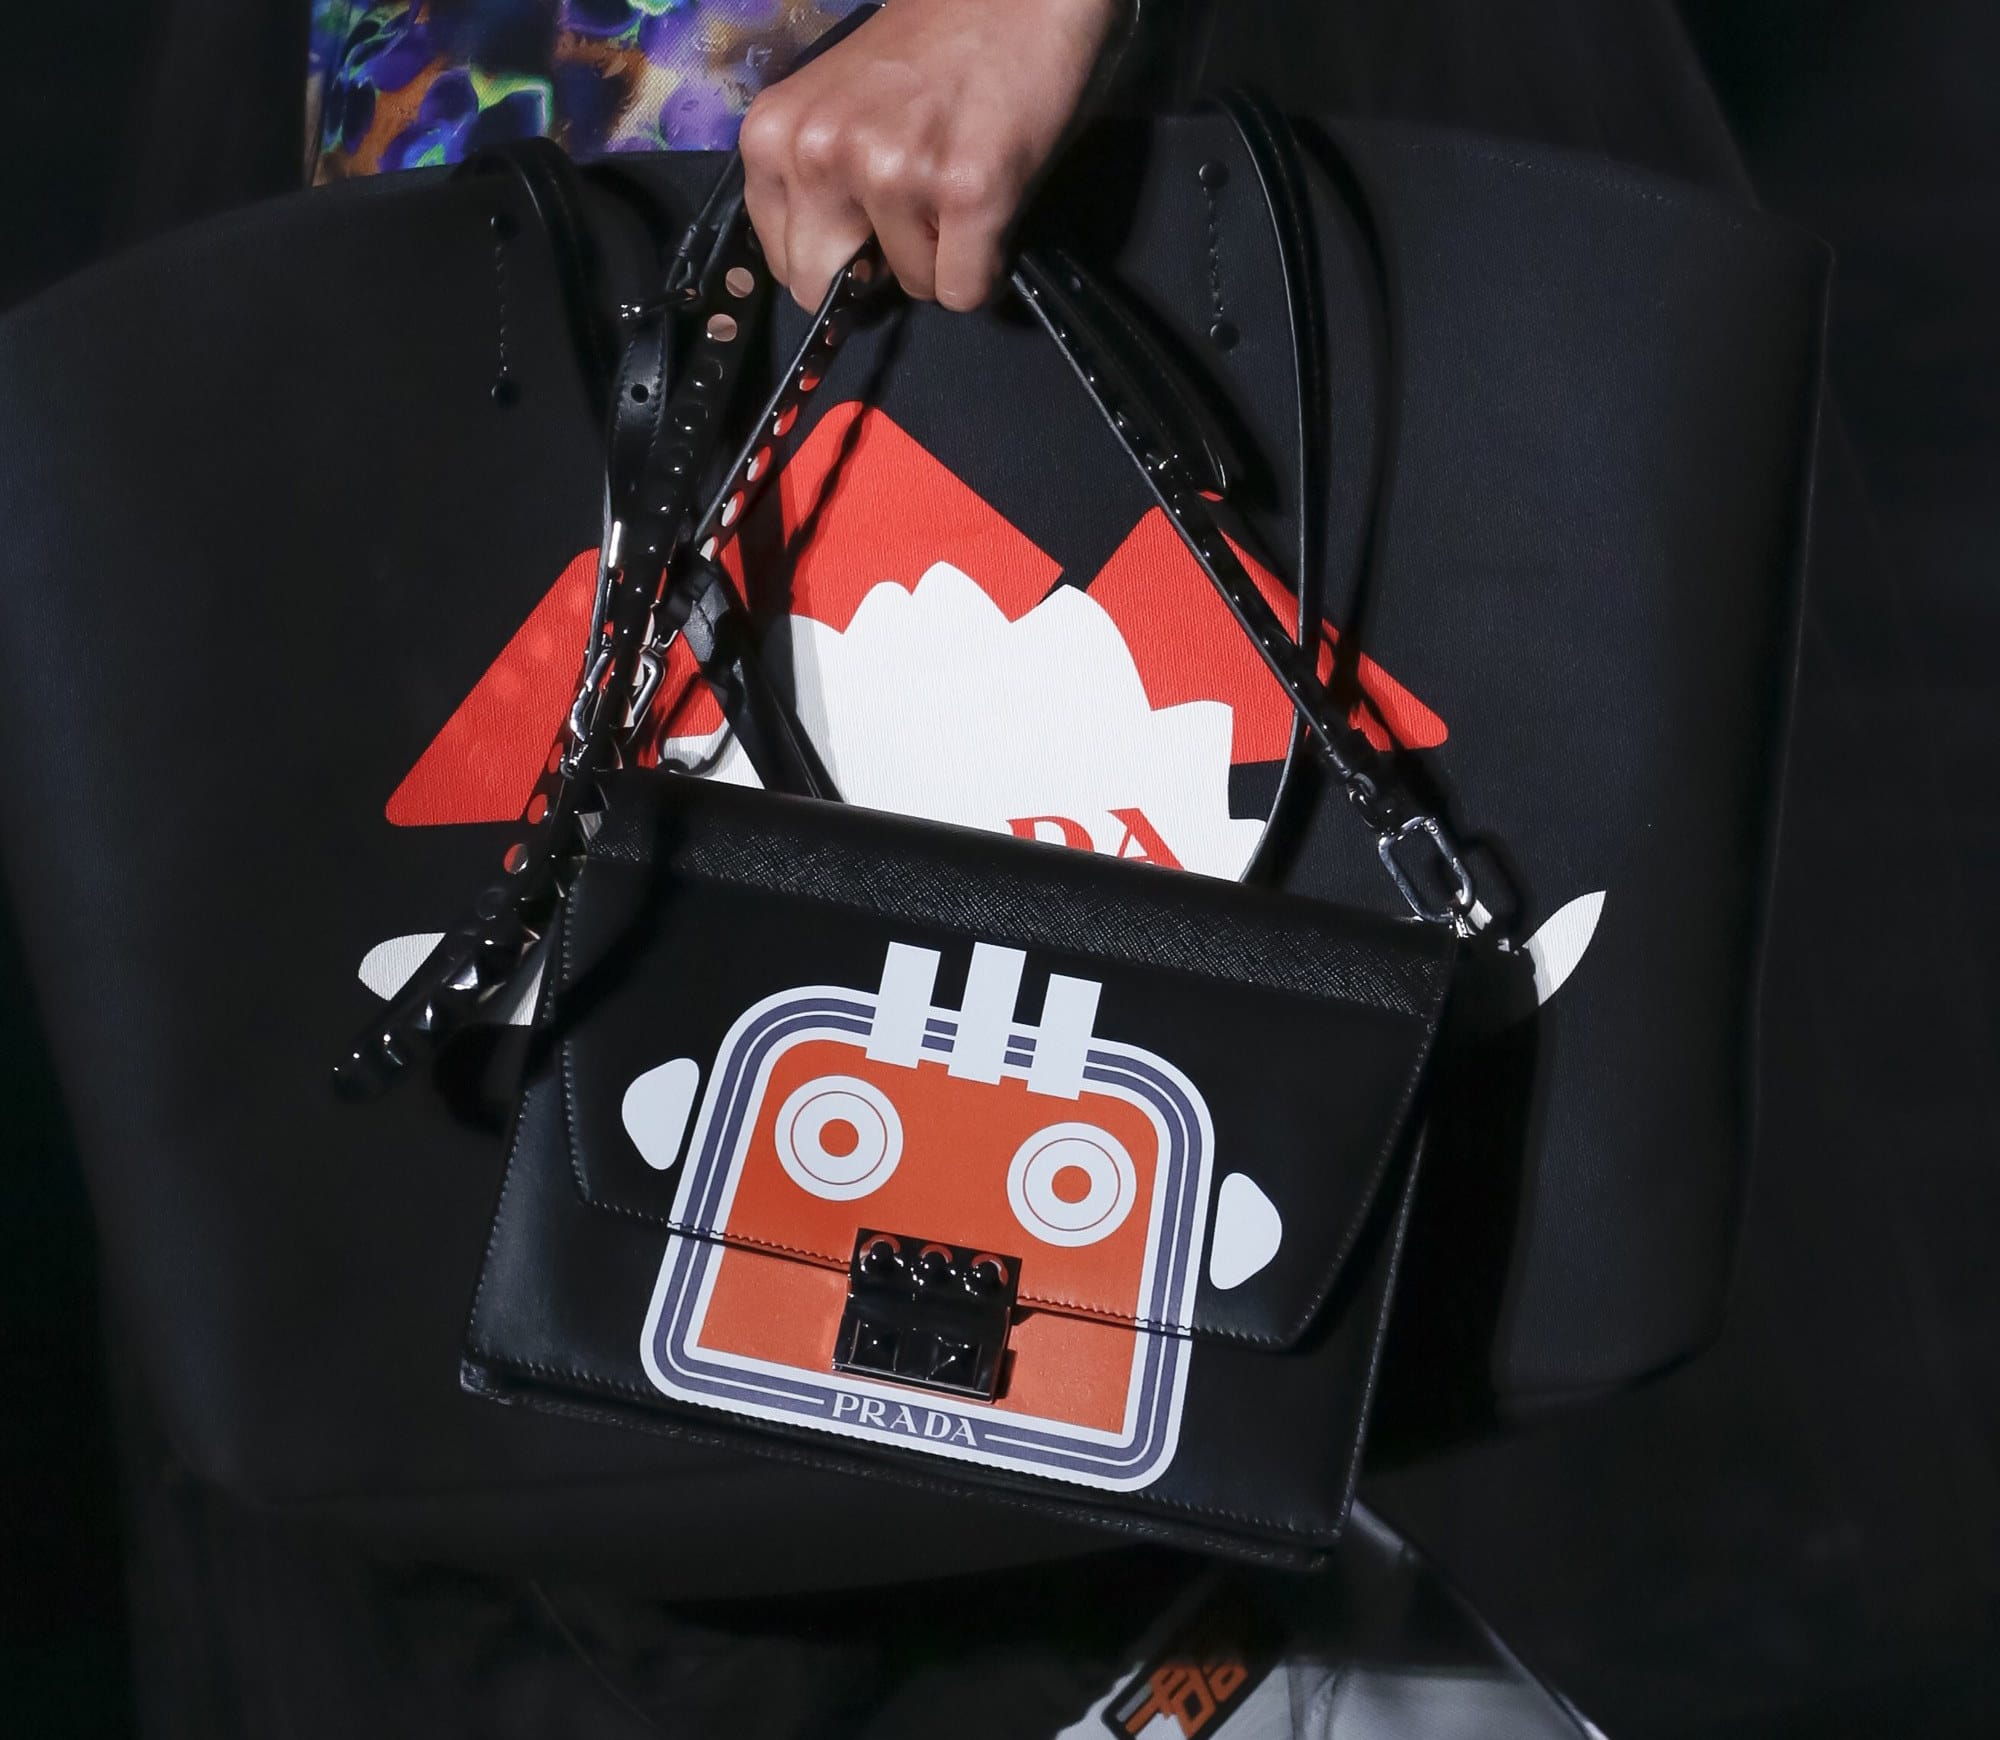 f21eef326c Prada Fall Winter 2018 Runway Bag Collection